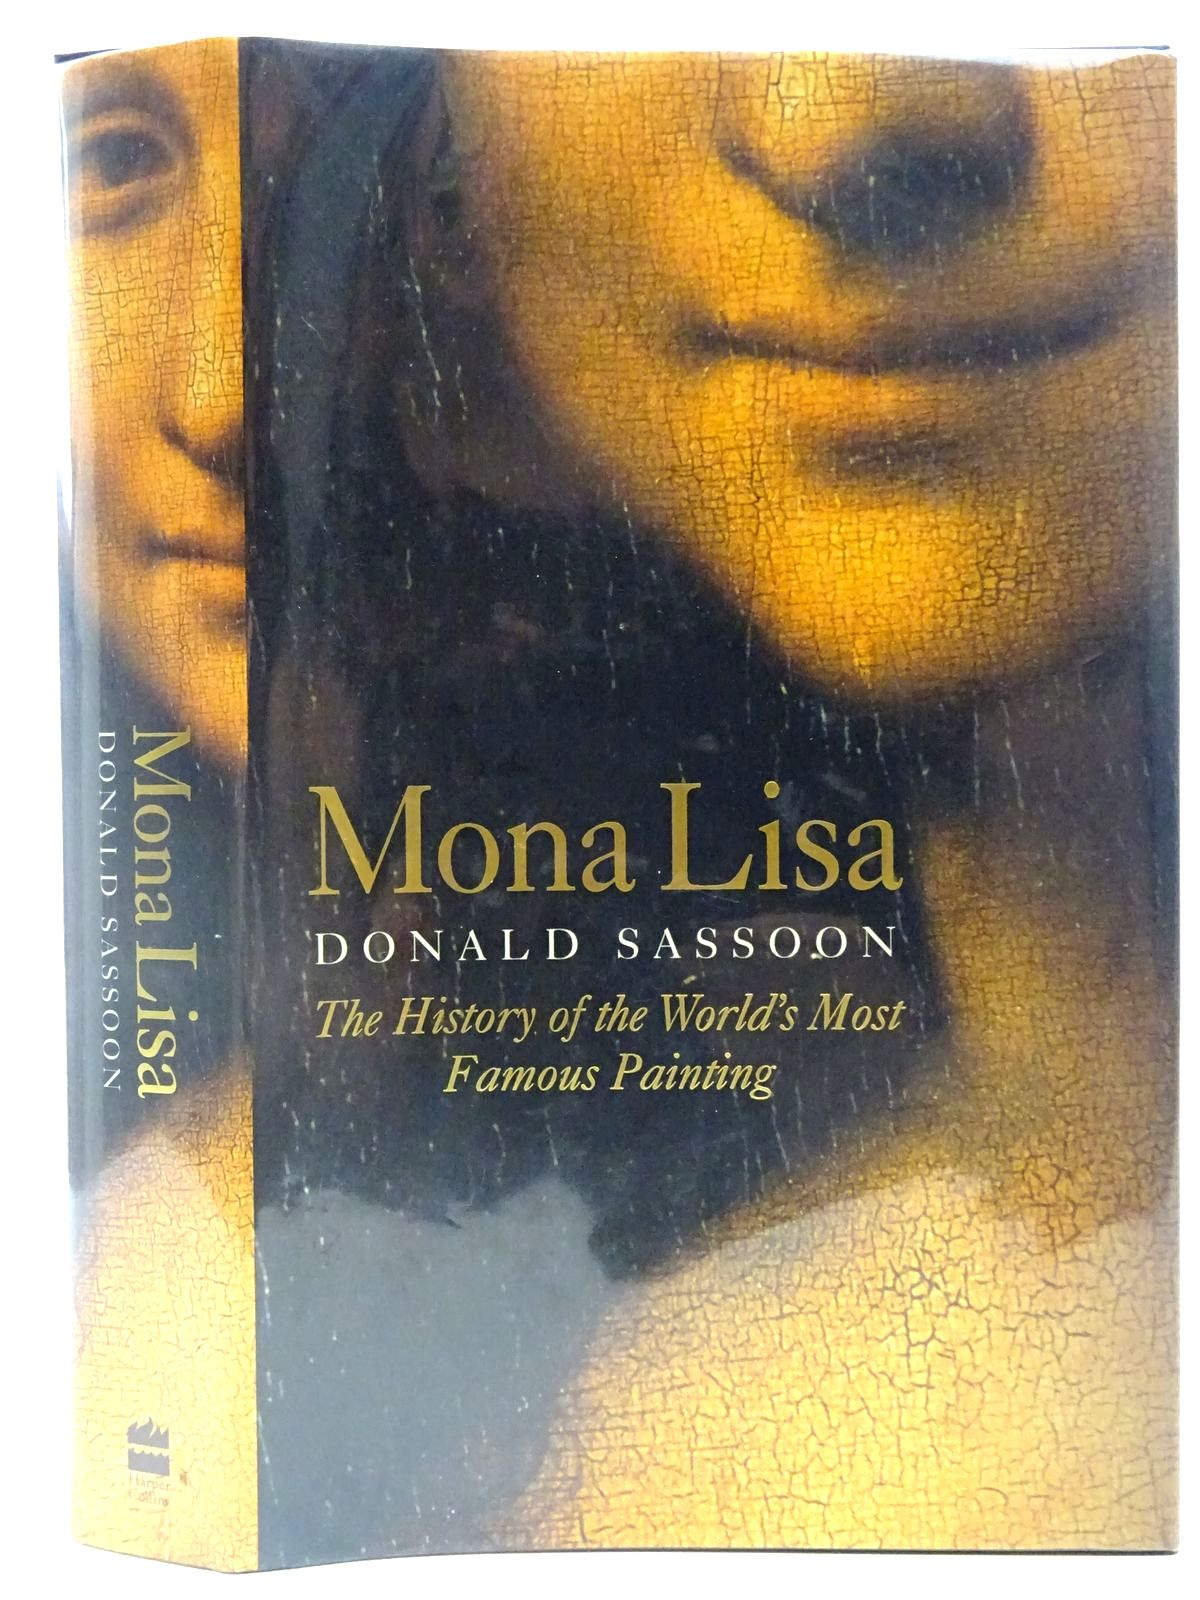 Photo of MONA LISA THE HISTORY OF THE WORLD'S MOST FAMOUS PAINTING written by Sassoon, Donald published by Harper Collins (STOCK CODE: 2127461)  for sale by Stella & Rose's Books